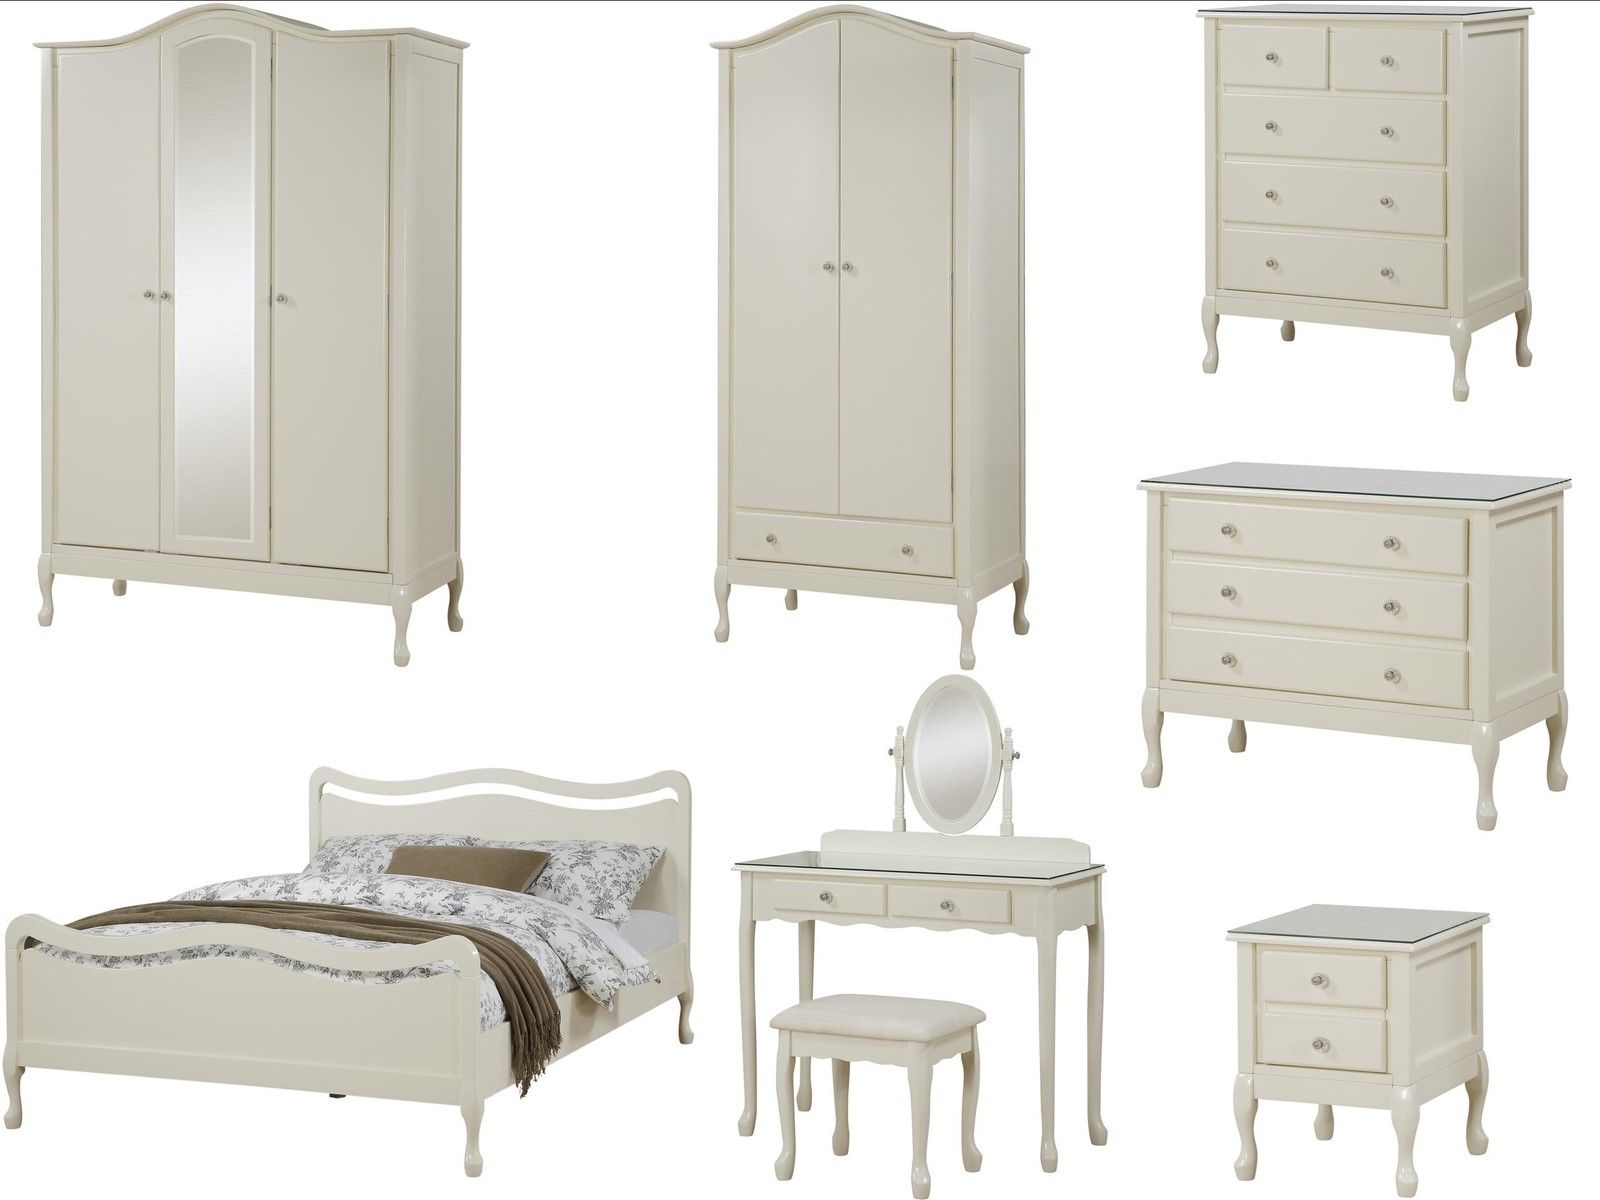 Loire Shabby Chic Ivory Bedroom Furniture Wardrobe